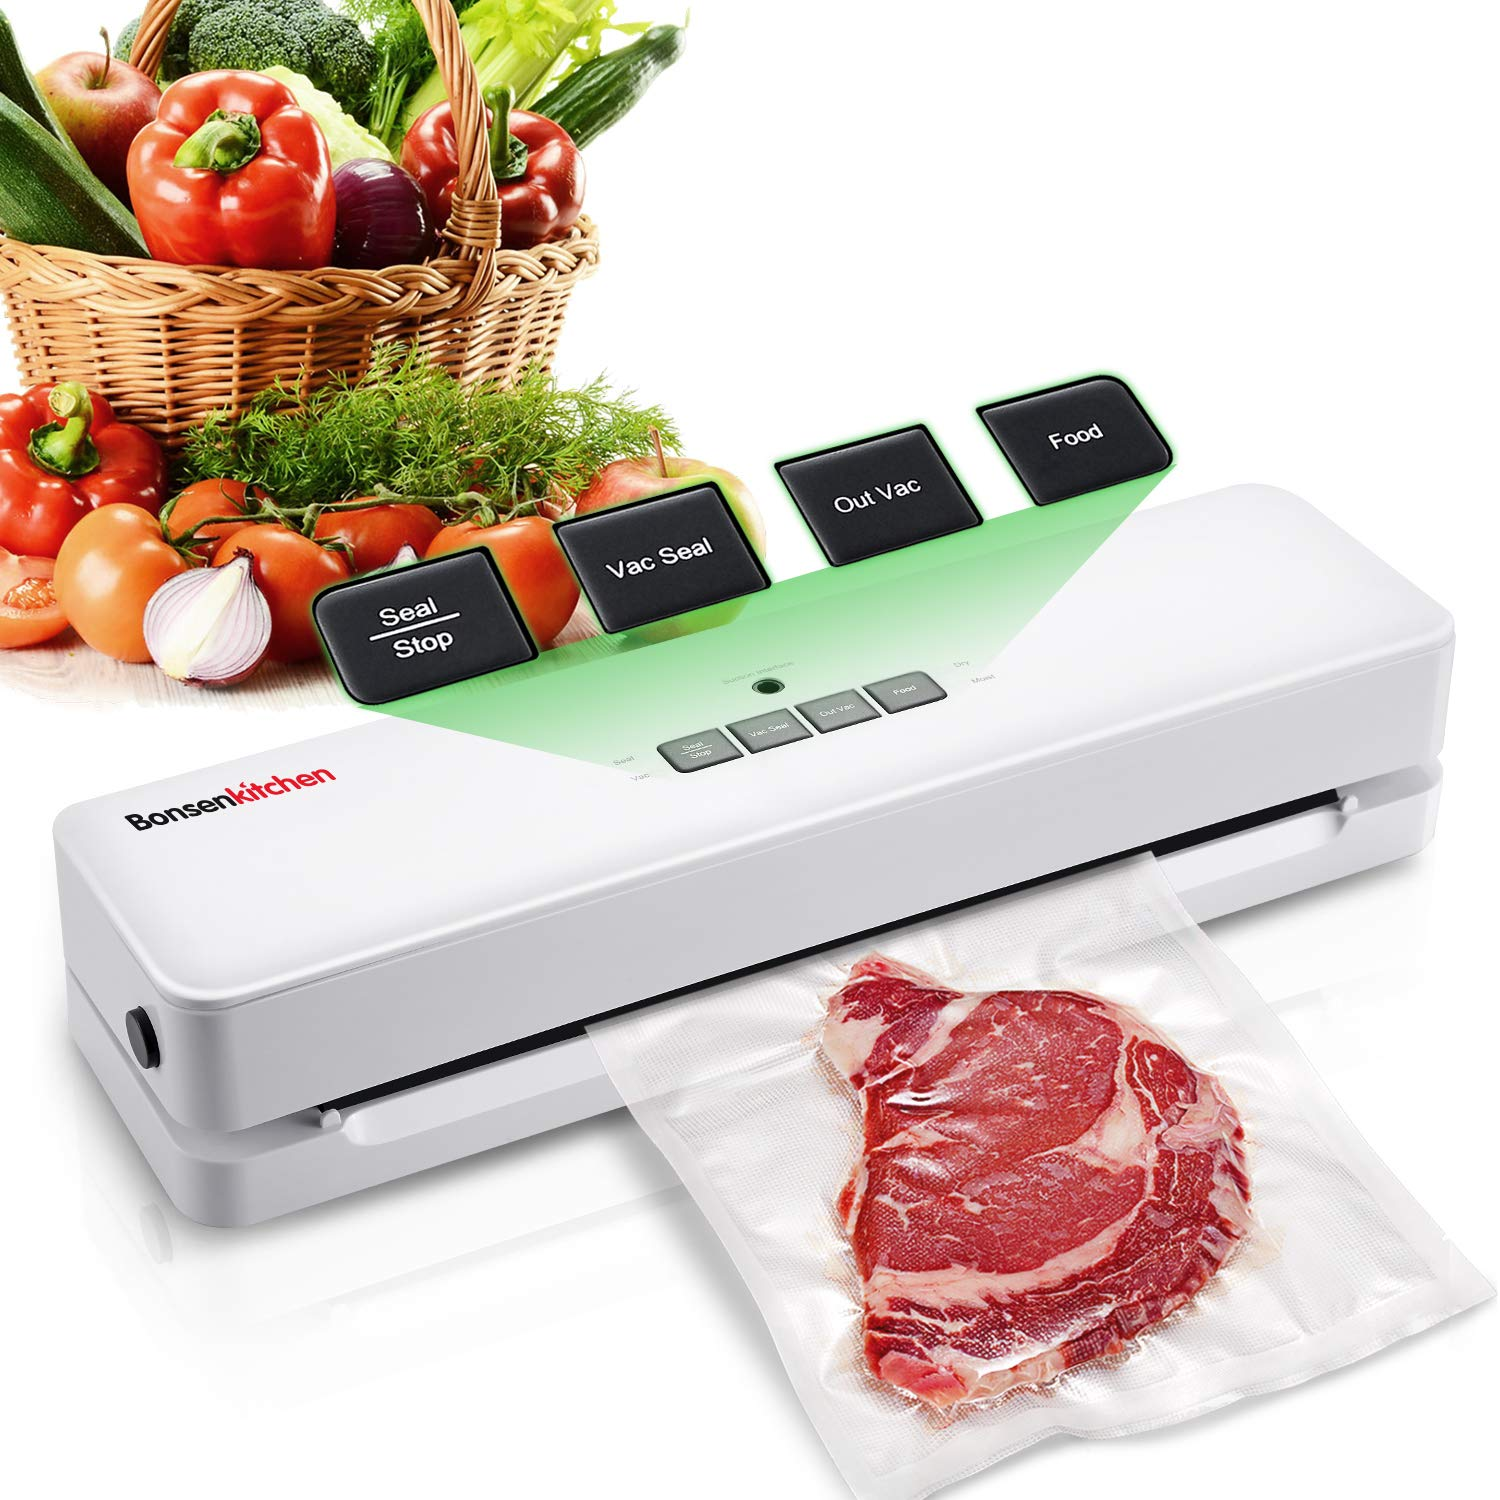 Bonsenkitchen Vacuum Sealer Machine for Food Saver, Compact Food Sealer for Sous Vide Cooking, One Key Automatic Vac/Seal Food Preservation with Starter Kit by Bonsenkitchen